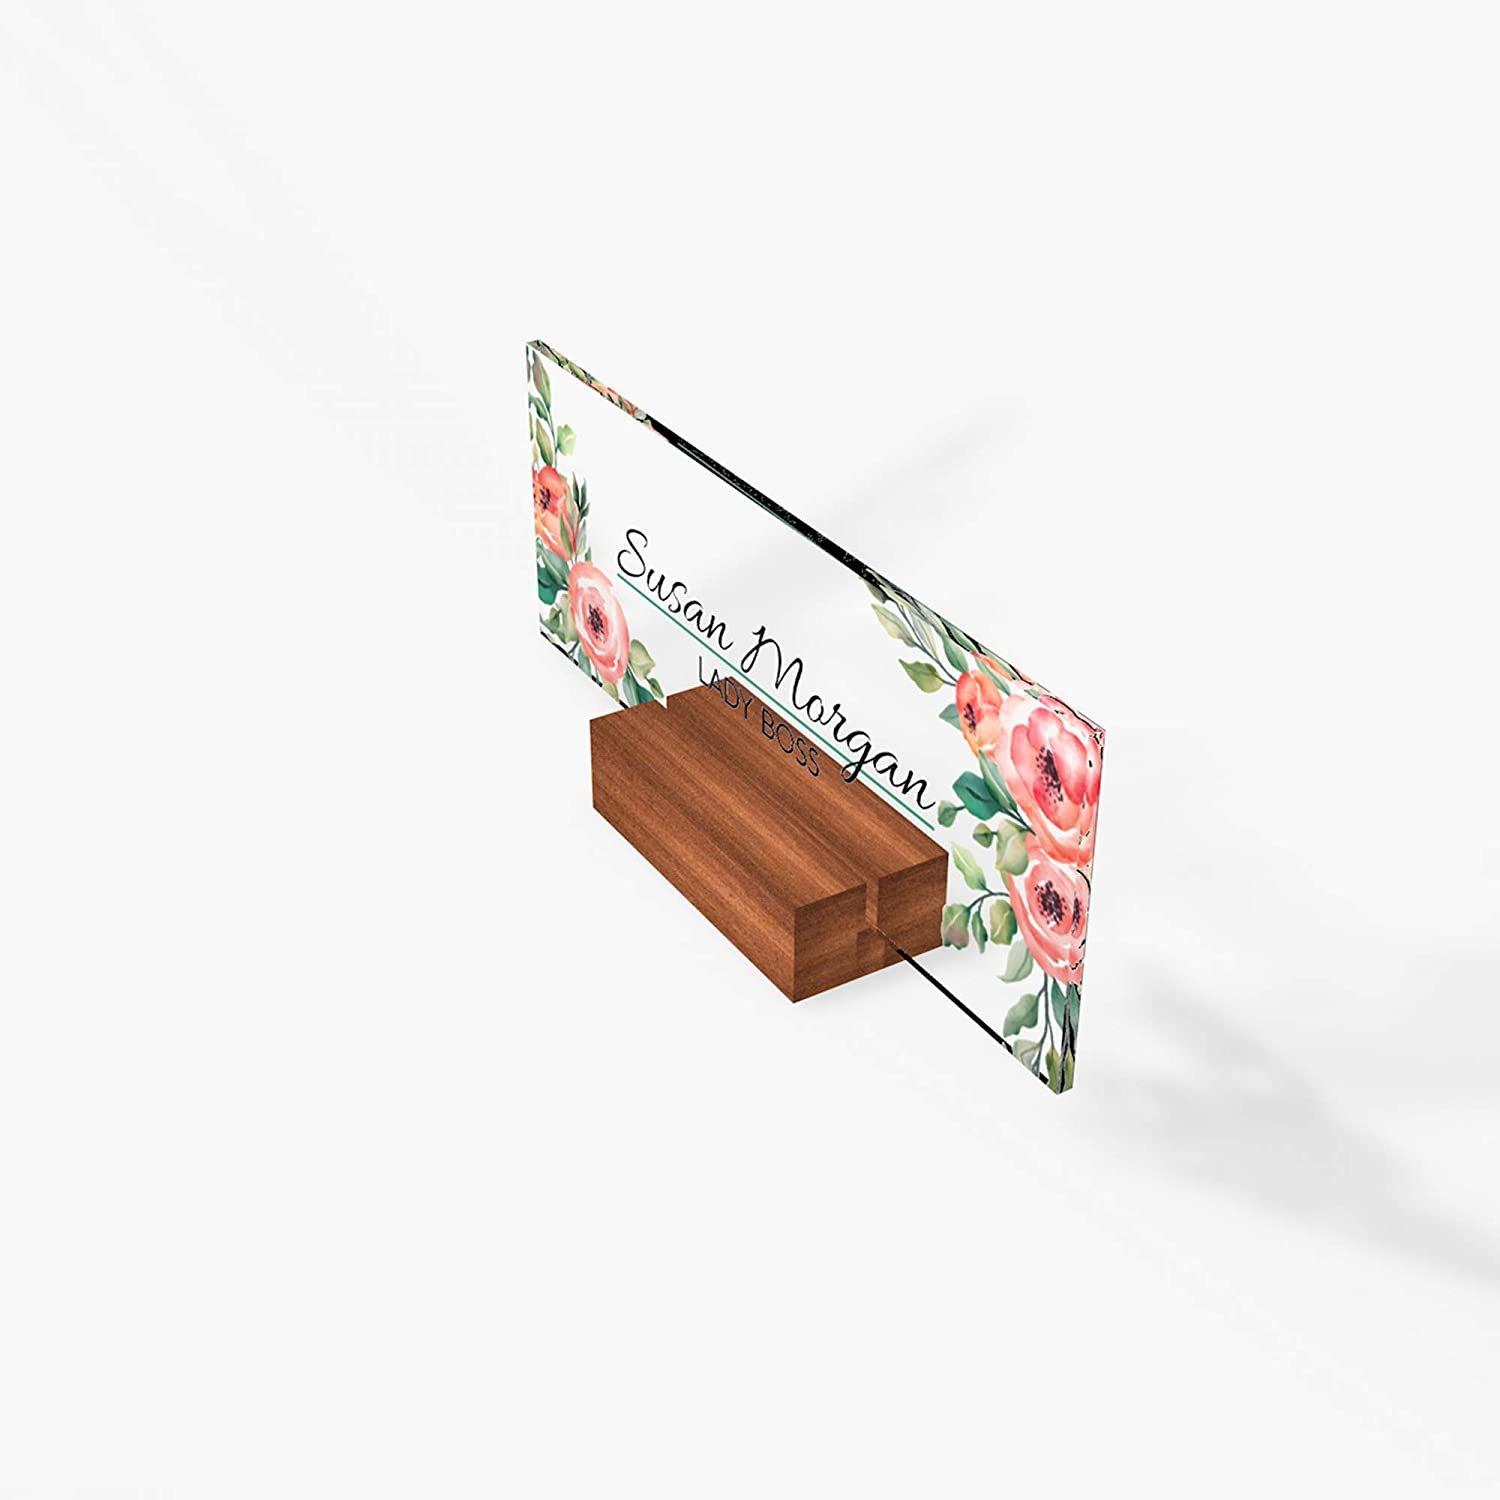 8x3 Desk Name Plate Office Supply Personalized Secretary Sign Gift Custom Nurses Teacher friend special Wood Rose floral flowers